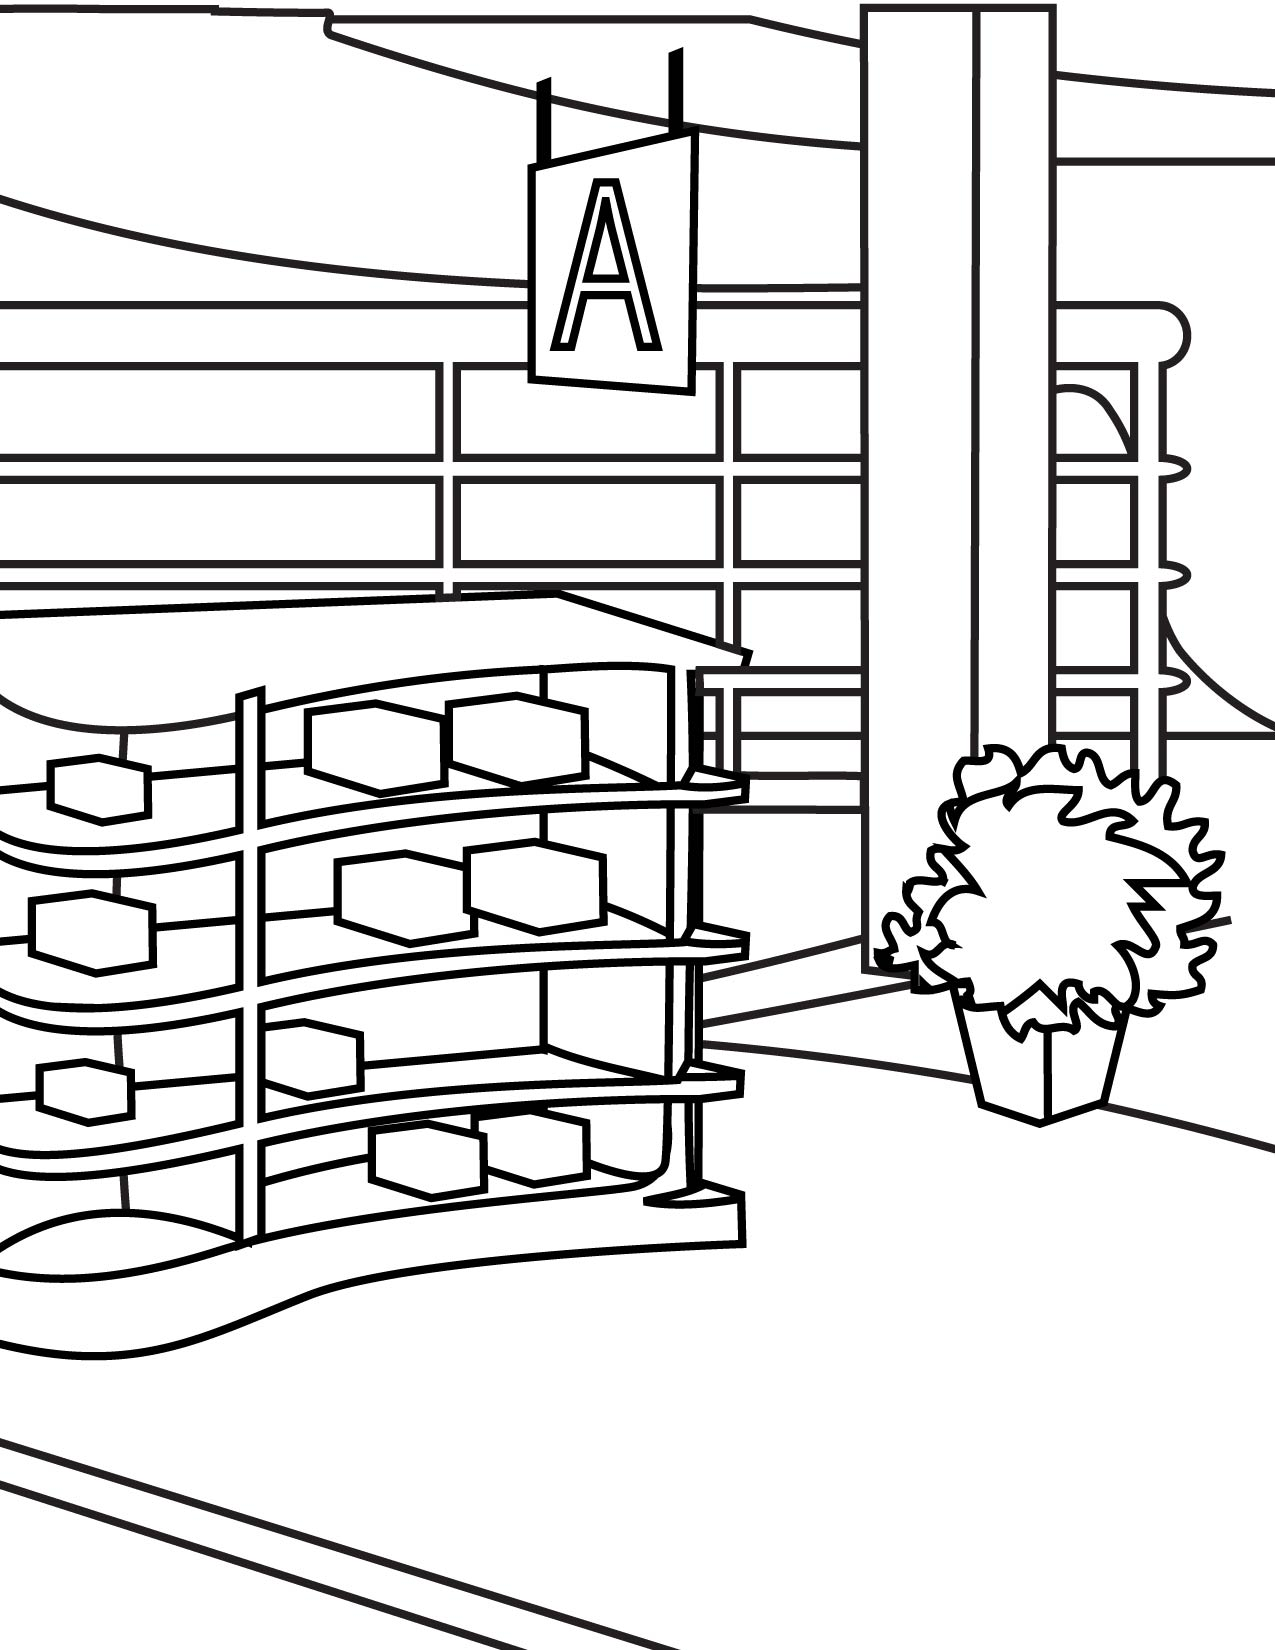 supermarket coloring pages - photo#31